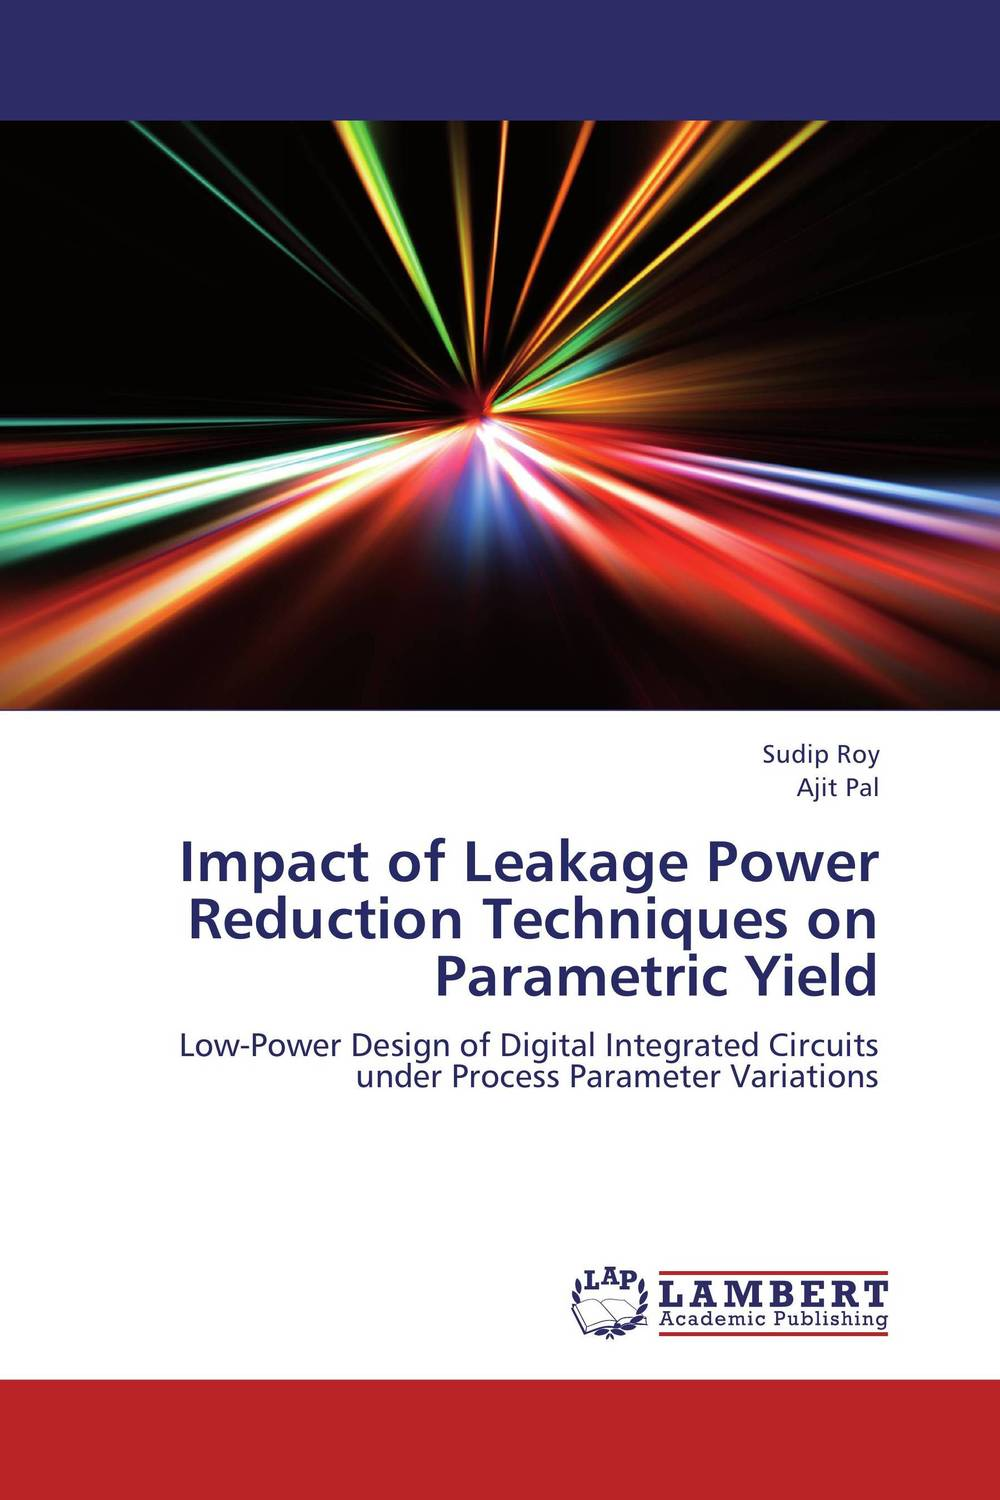 Impact of Leakage Power Reduction Techniques on Parametric Yield bella baby happy подгузники 9 20 кг 62 шт